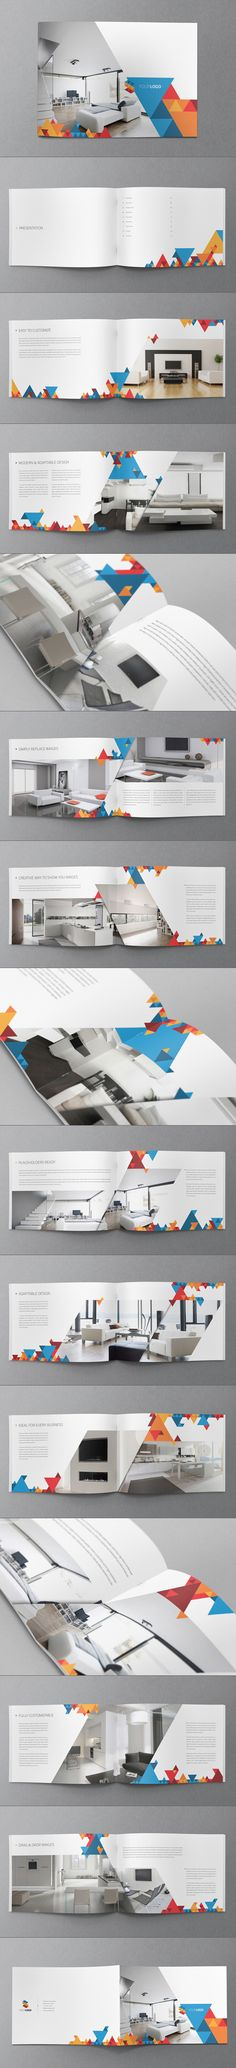 Professional Brochure Designs for Corporate Business